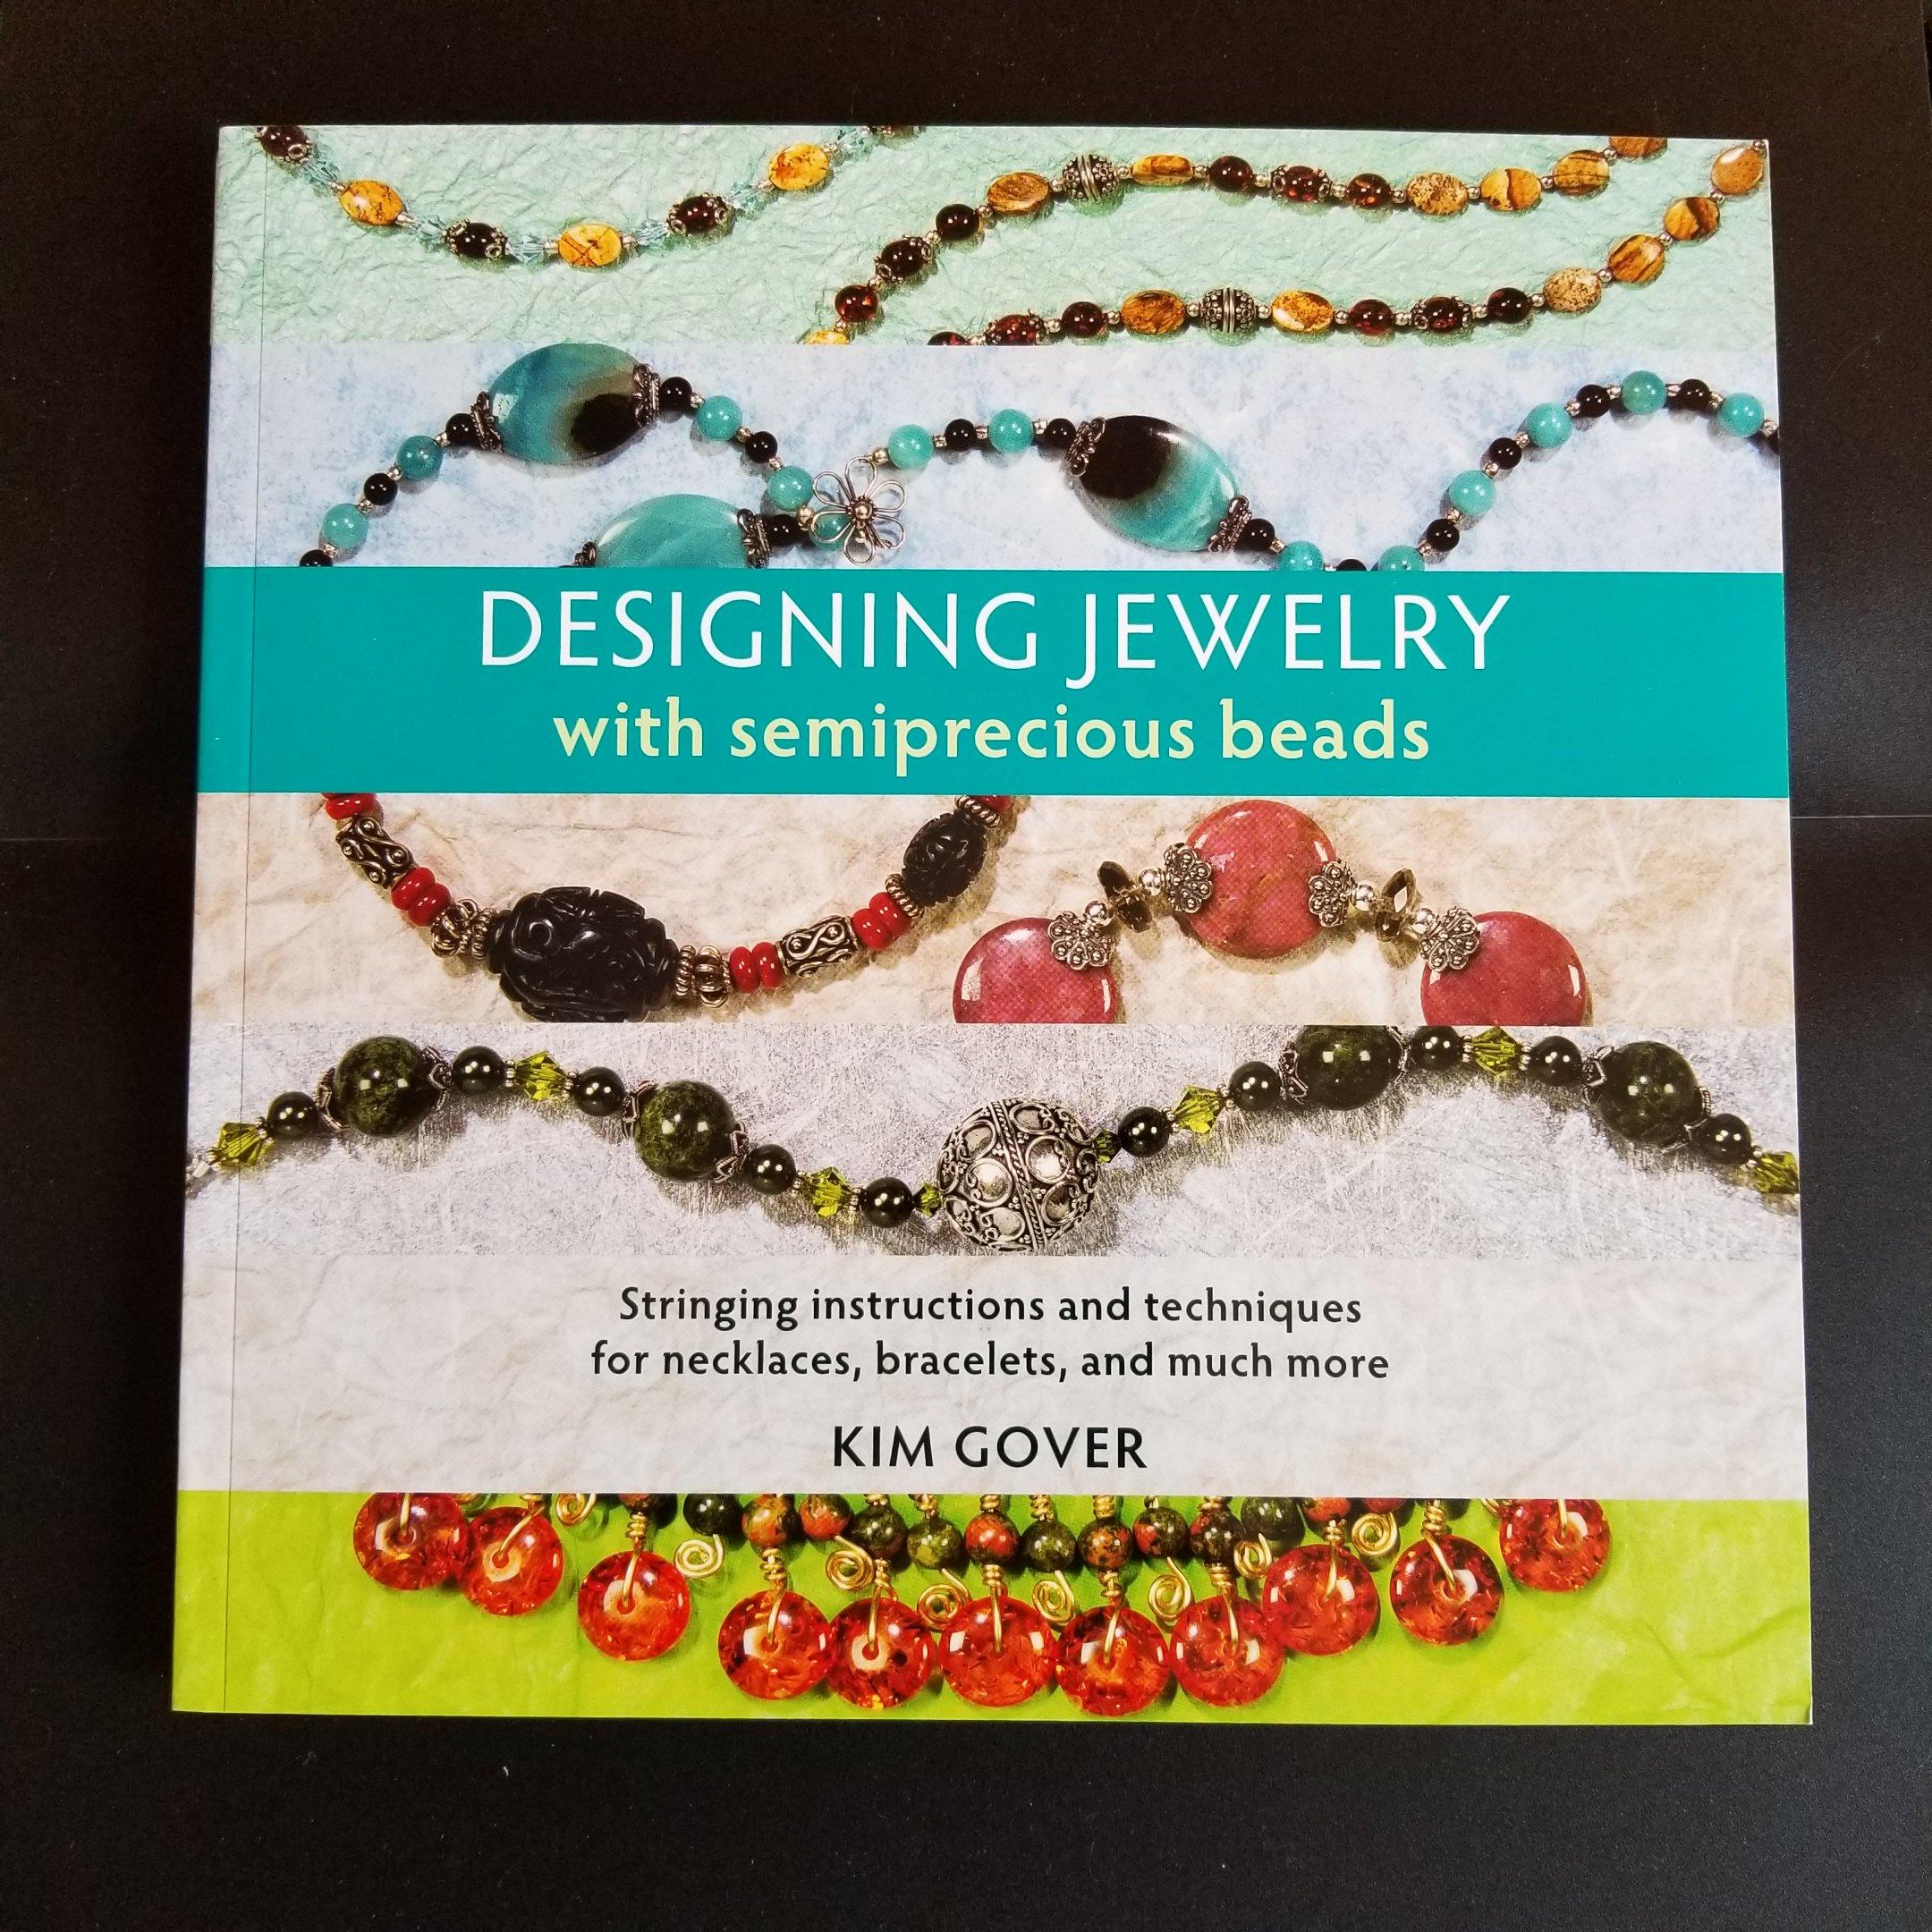 Image for Designing Jewelry with Semiprecious Beads.